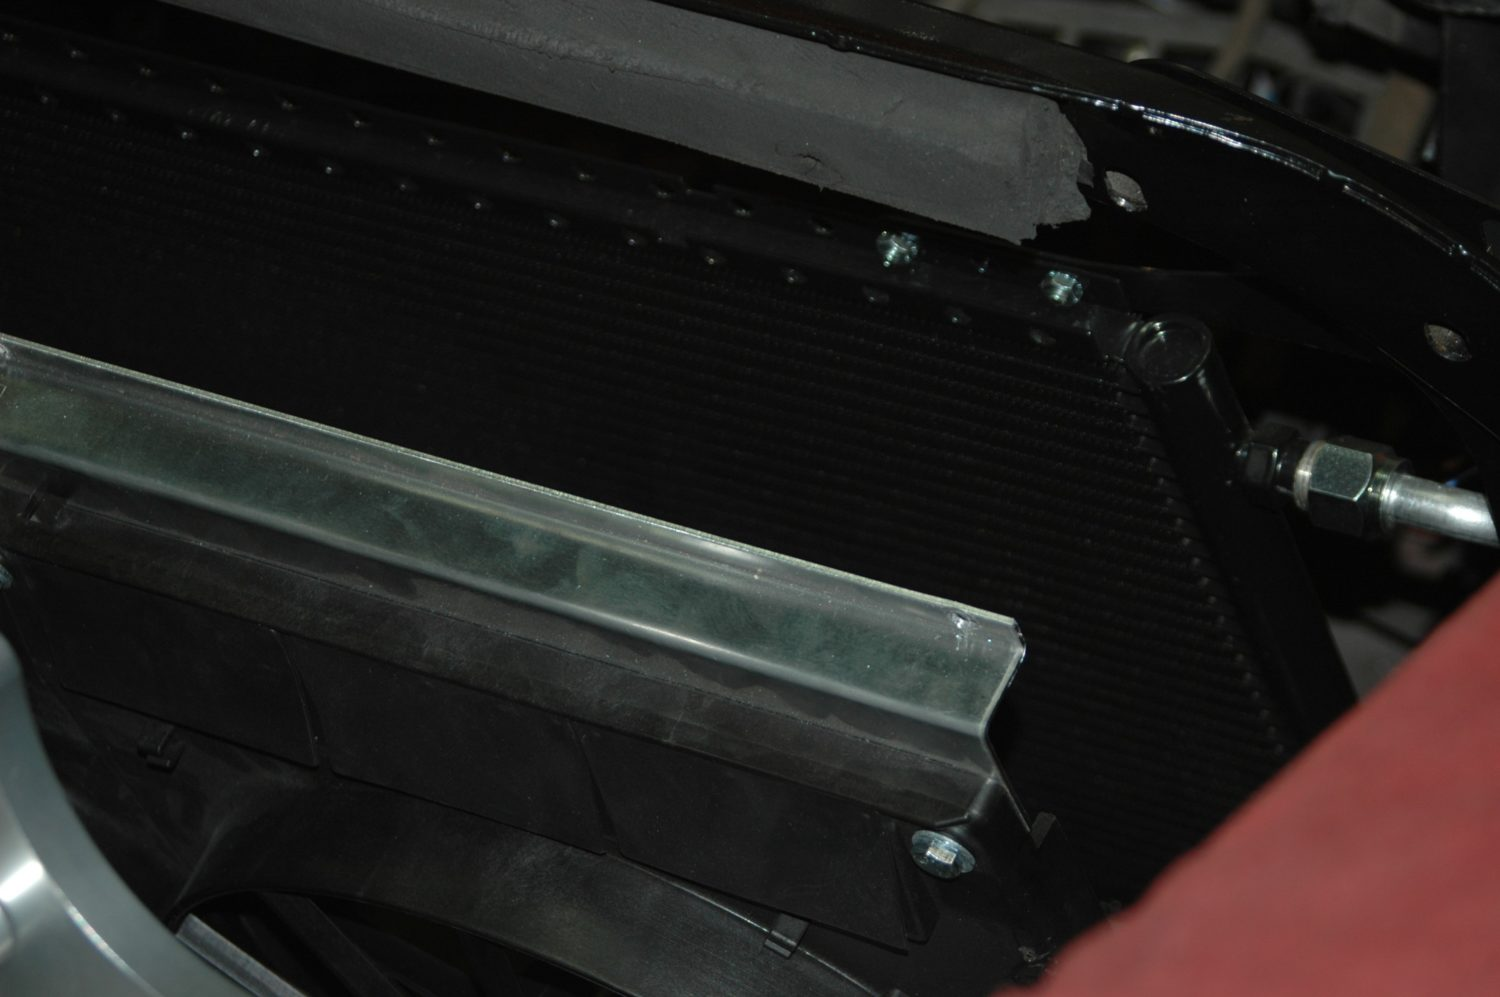 hight resolution of due to the space constraints of putting in the radiator with the engine already in place we have to remove the fans from the radiator and lay them loosely